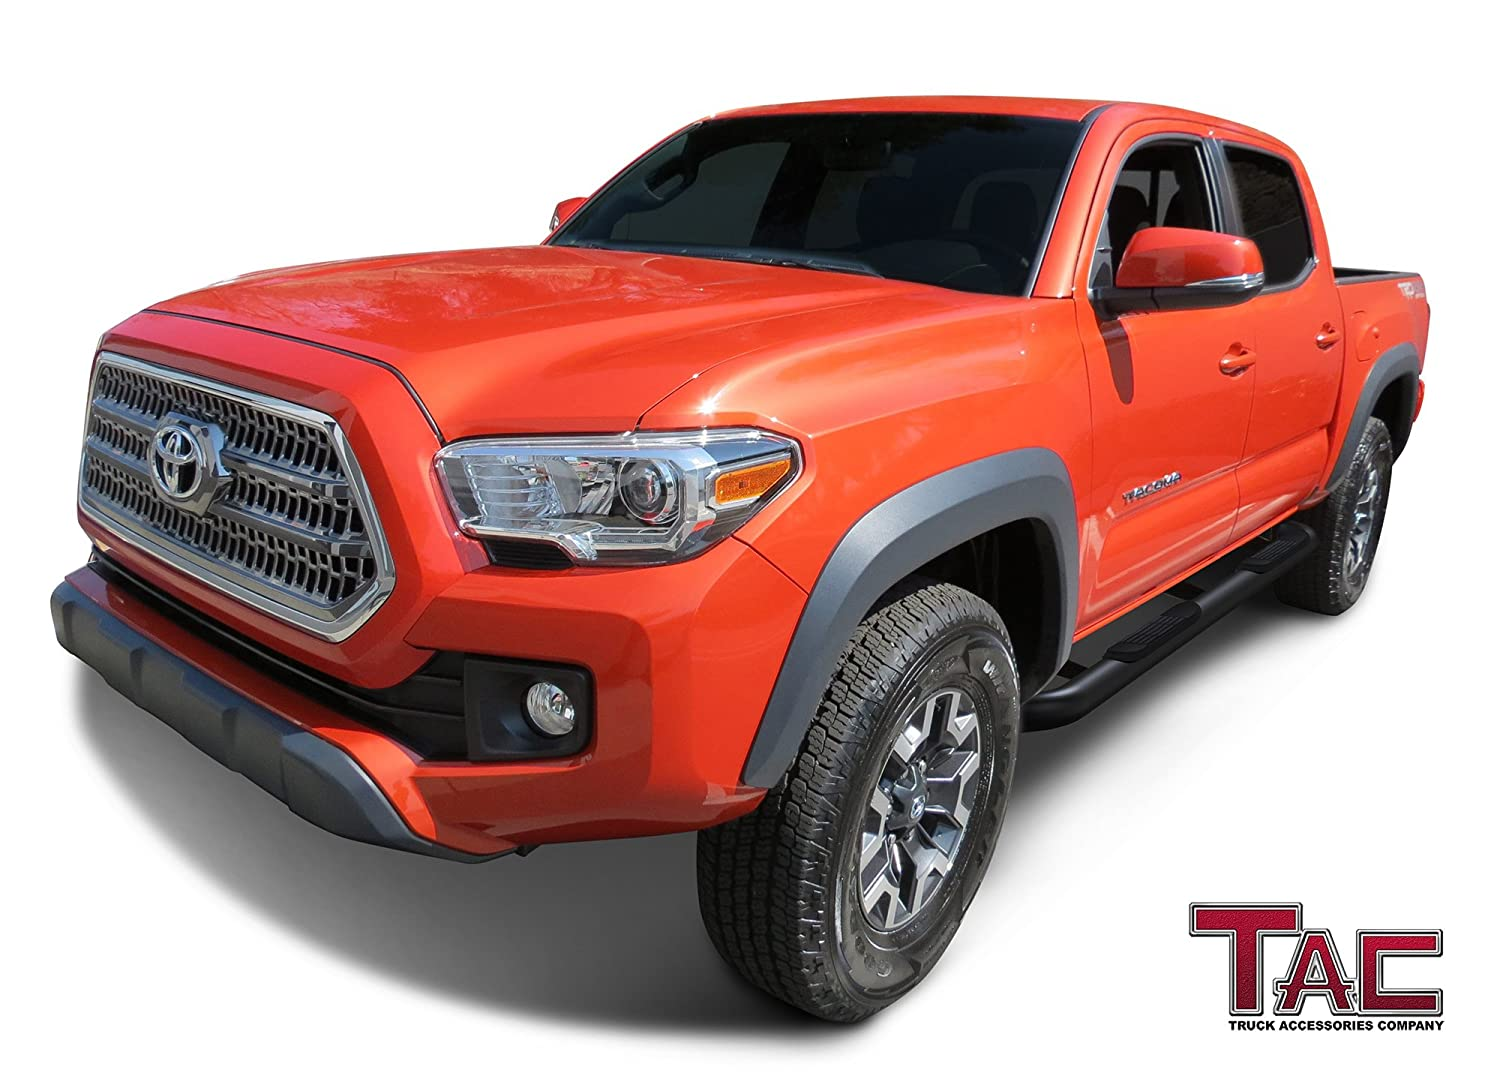 TAC Side Steps Fit 2005-2019 Toyota Tacoma Double Cab Truck Pickup 3 Black Side Bars Nerf Bars Step Rails Running Boards Rock Panel Off Road Exterior Accessories 2 Pieces Running Boards